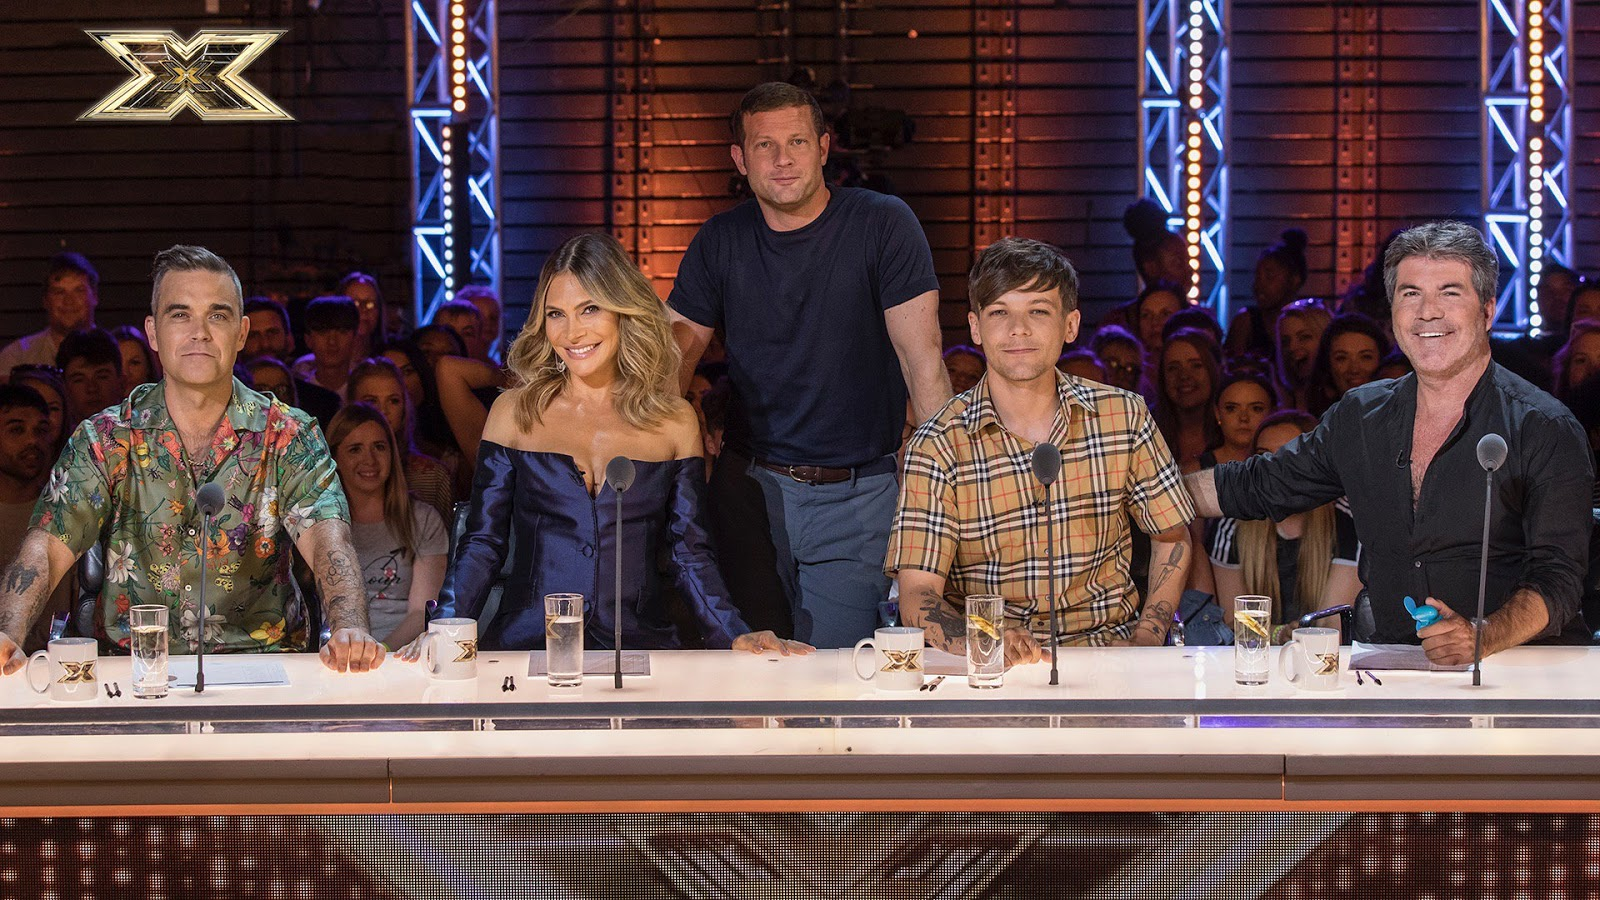 Os jurados Robbie Williams, Ayda Field, Louis Tomlinson e Simon Cowell com o apresentador Dermot O'Leary no The X Factor UK 2018, reality show musical. [Imagem: Divulgação/ITV]